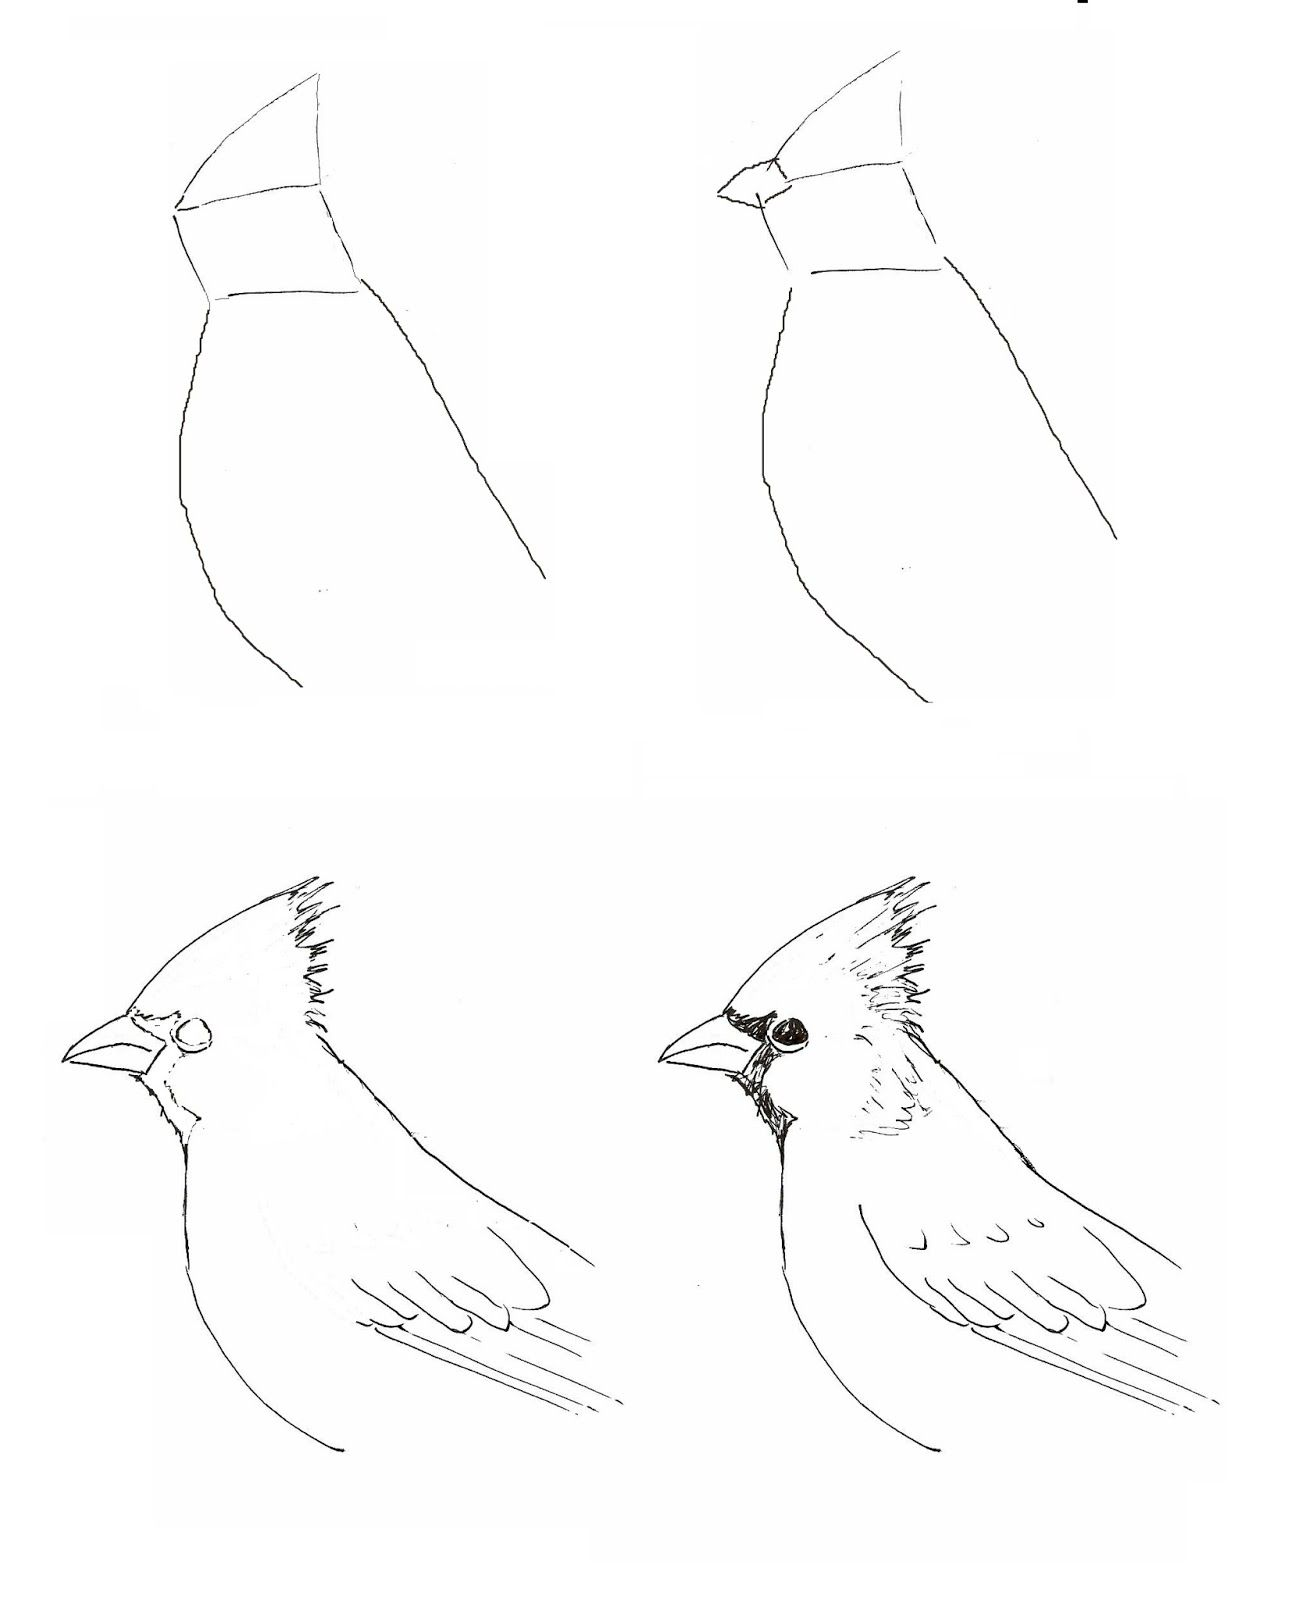 Cardinals With Images Bird Drawings Art Drawings Easy Drawings